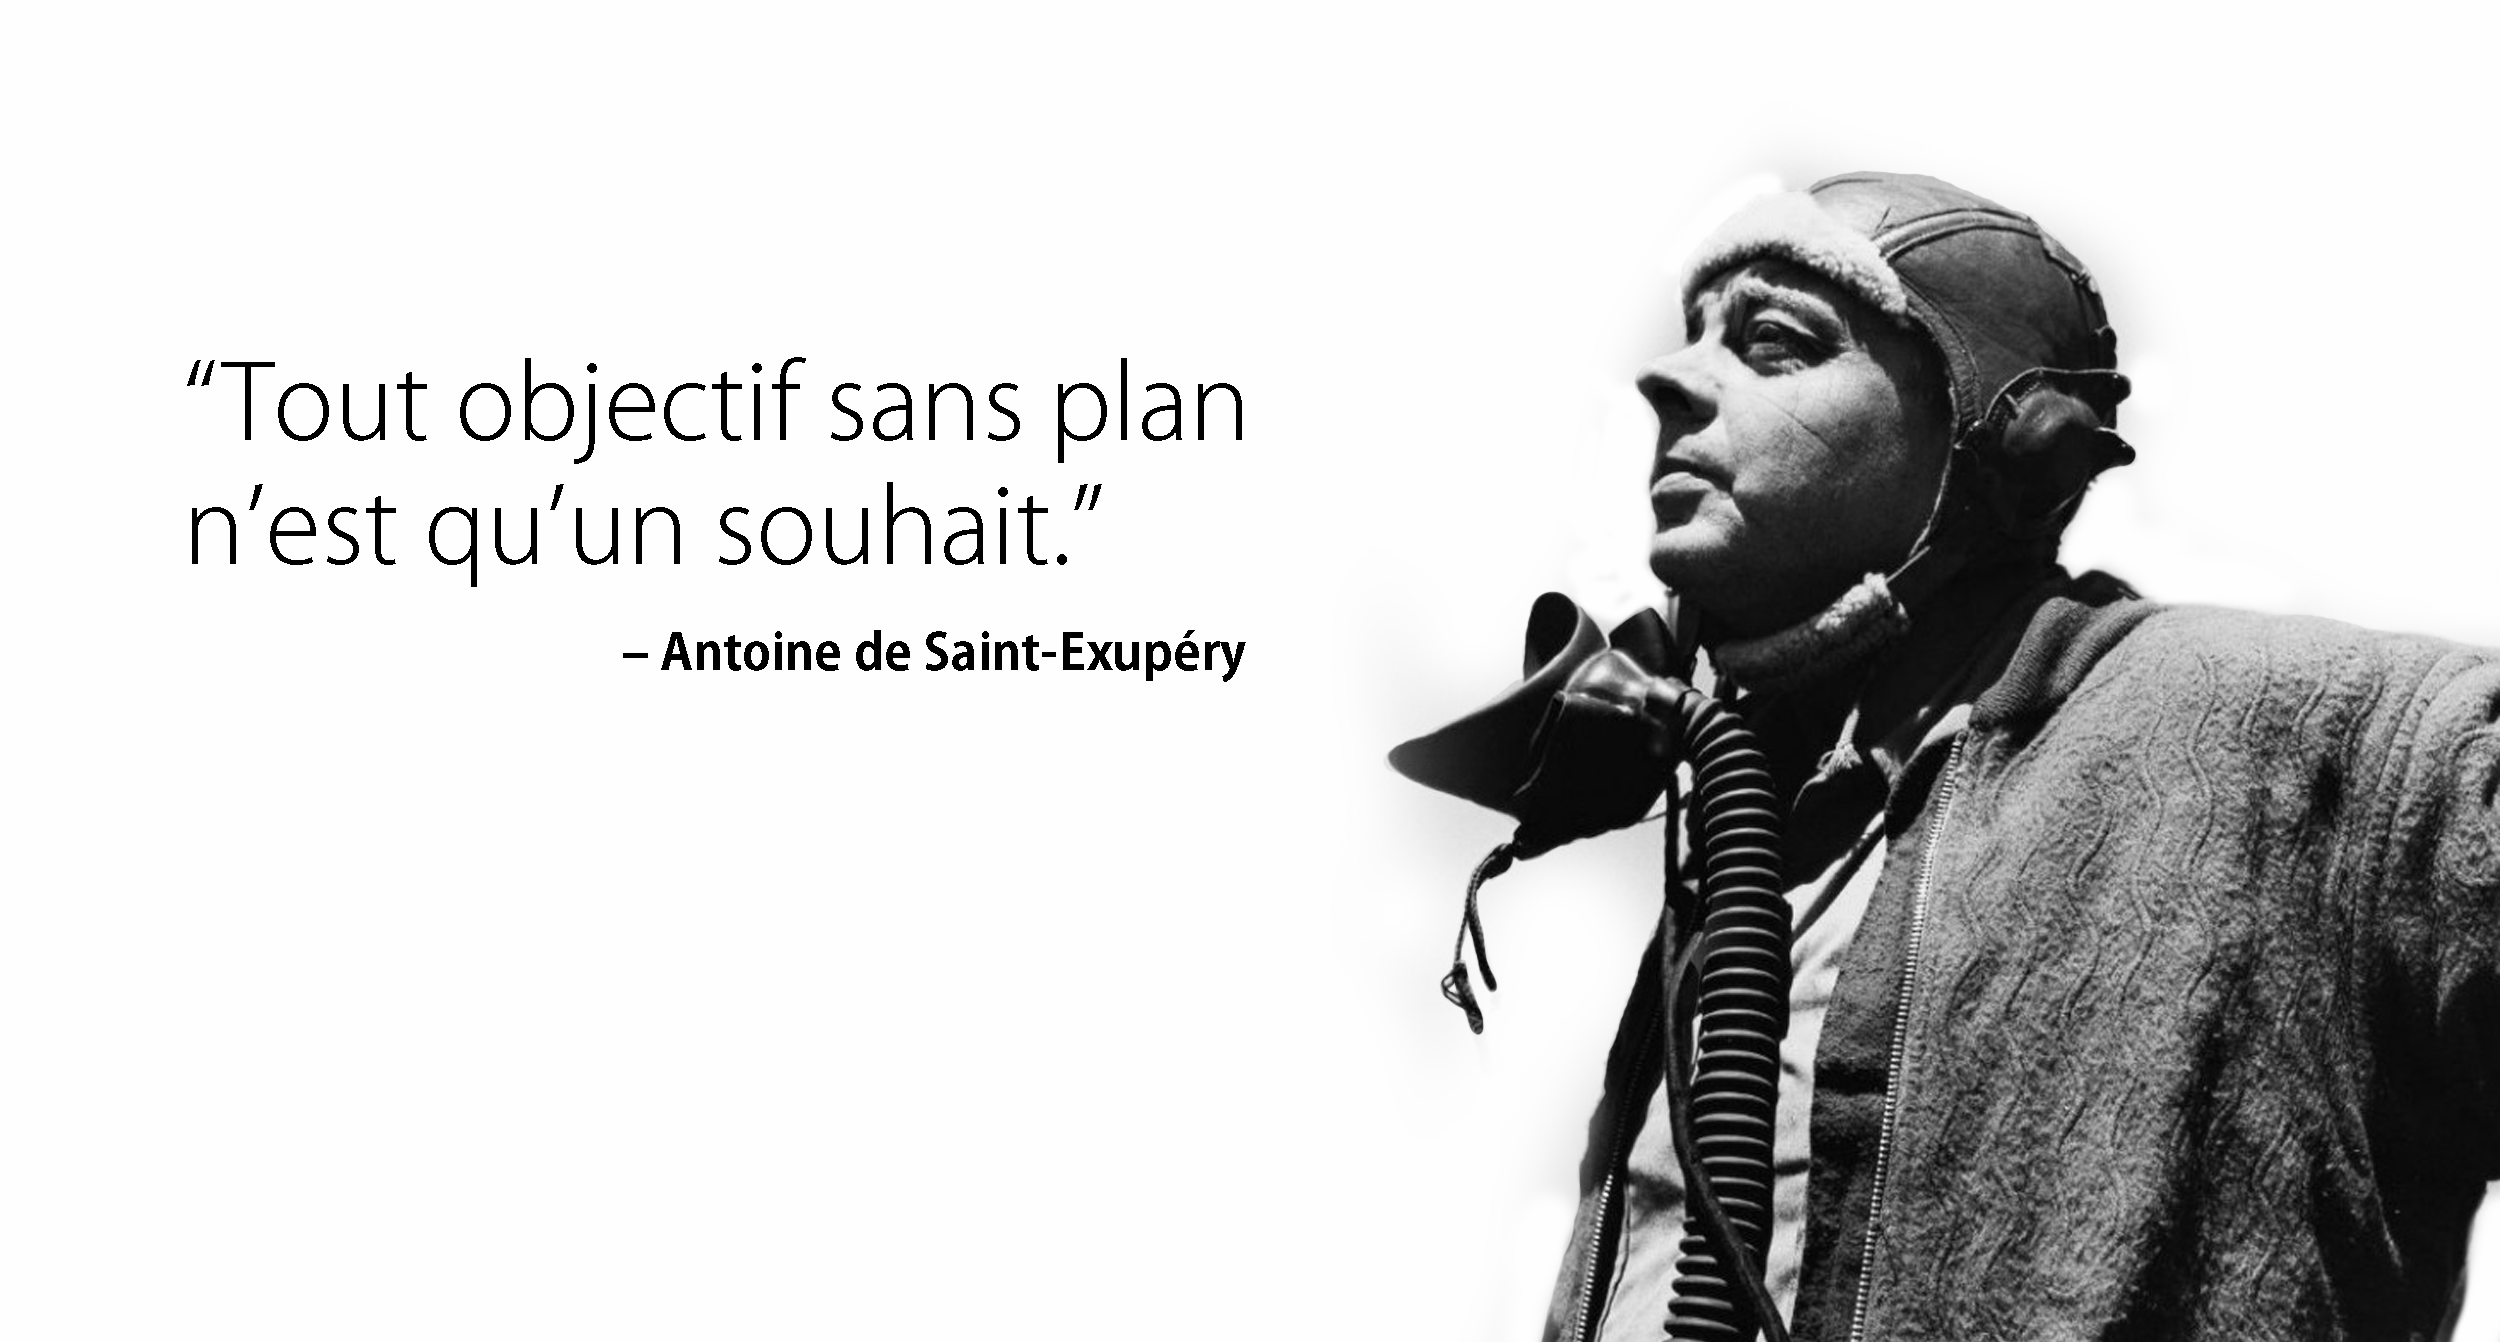 Antoine de Saint-Exupéry - écrivain, journaliste et pionnier de l'aviation.